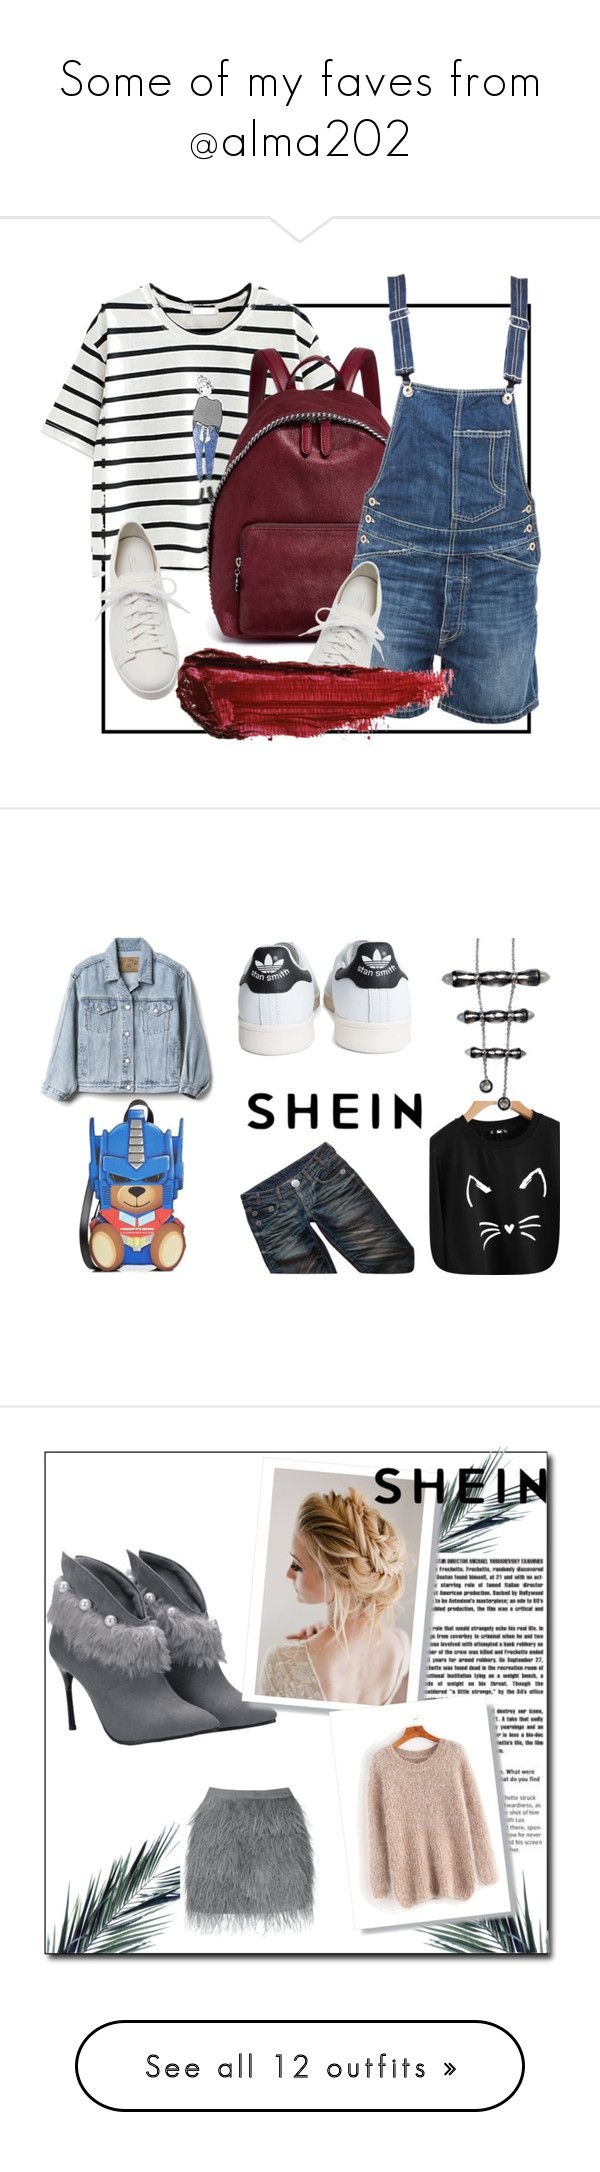 """Some of my faves from @alma202"" by xonfident ❤ liked on Polyvore featuring Santoni, STELLA McCARTNEY, Dondup, By Terry, Thomas Wylde, adidas, Gap, Moschino, Origin 31 and New Growth Designs"